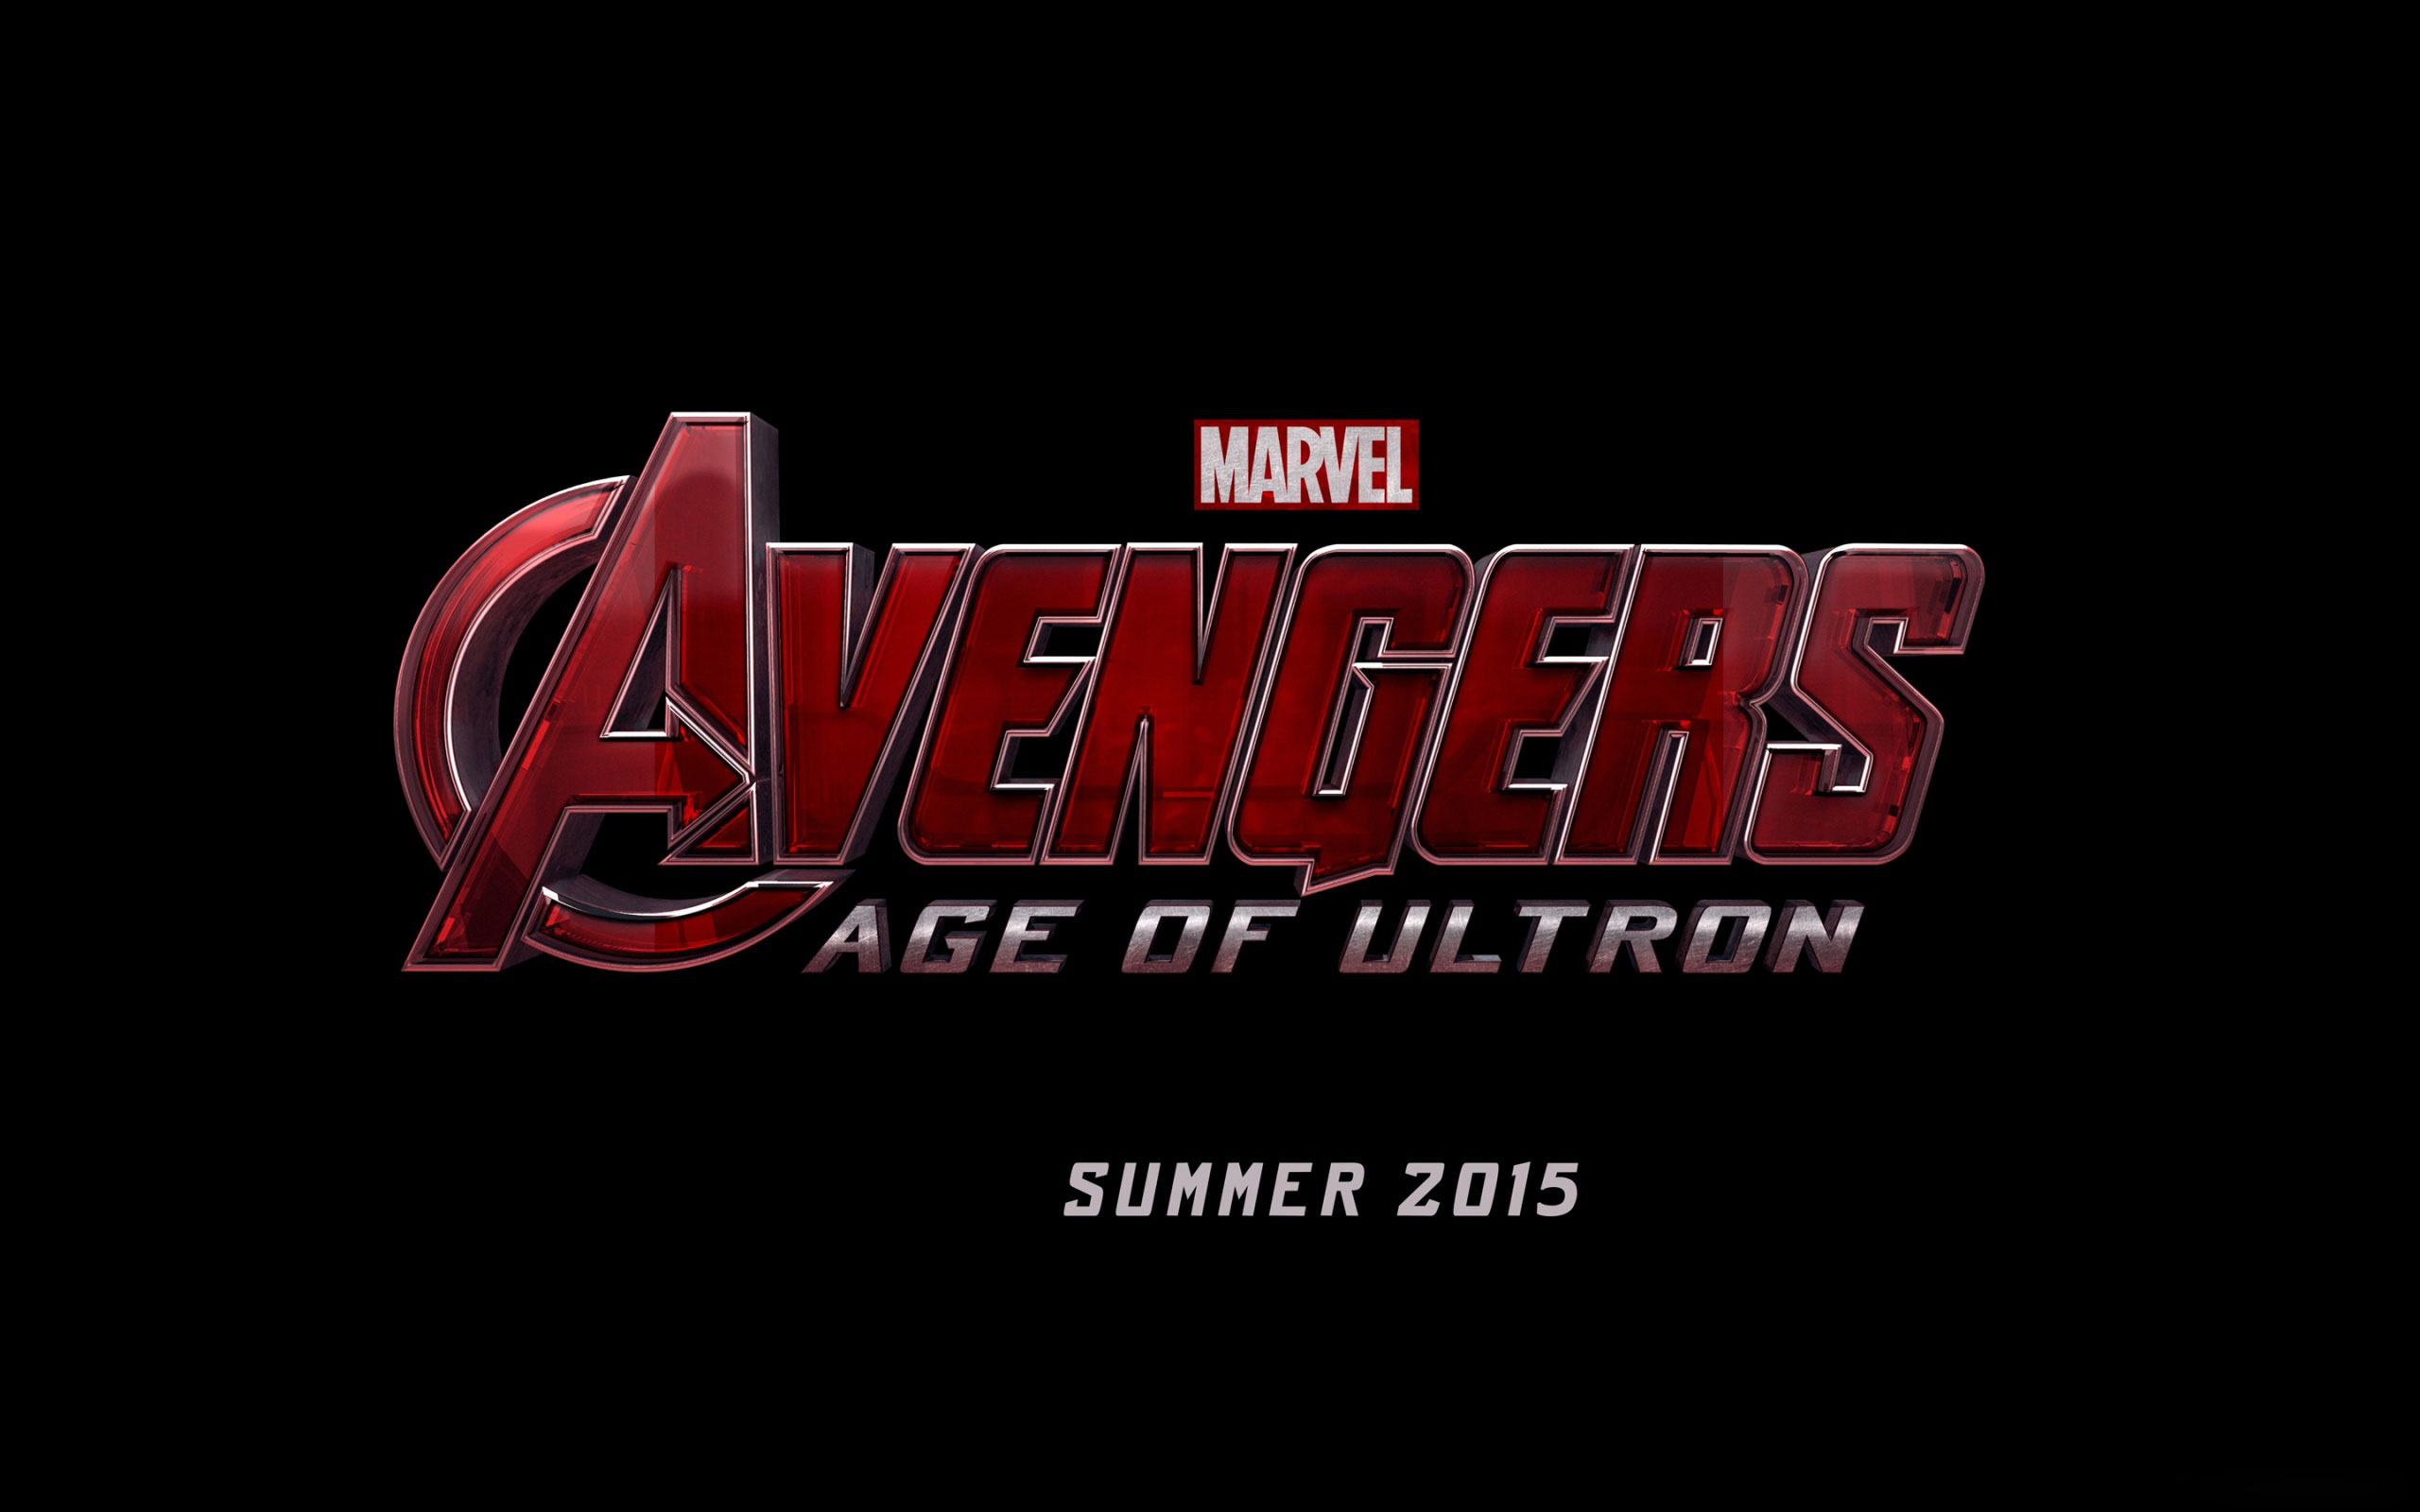 The Avengers Age of Ultron Wallpaper 1 2560x1600